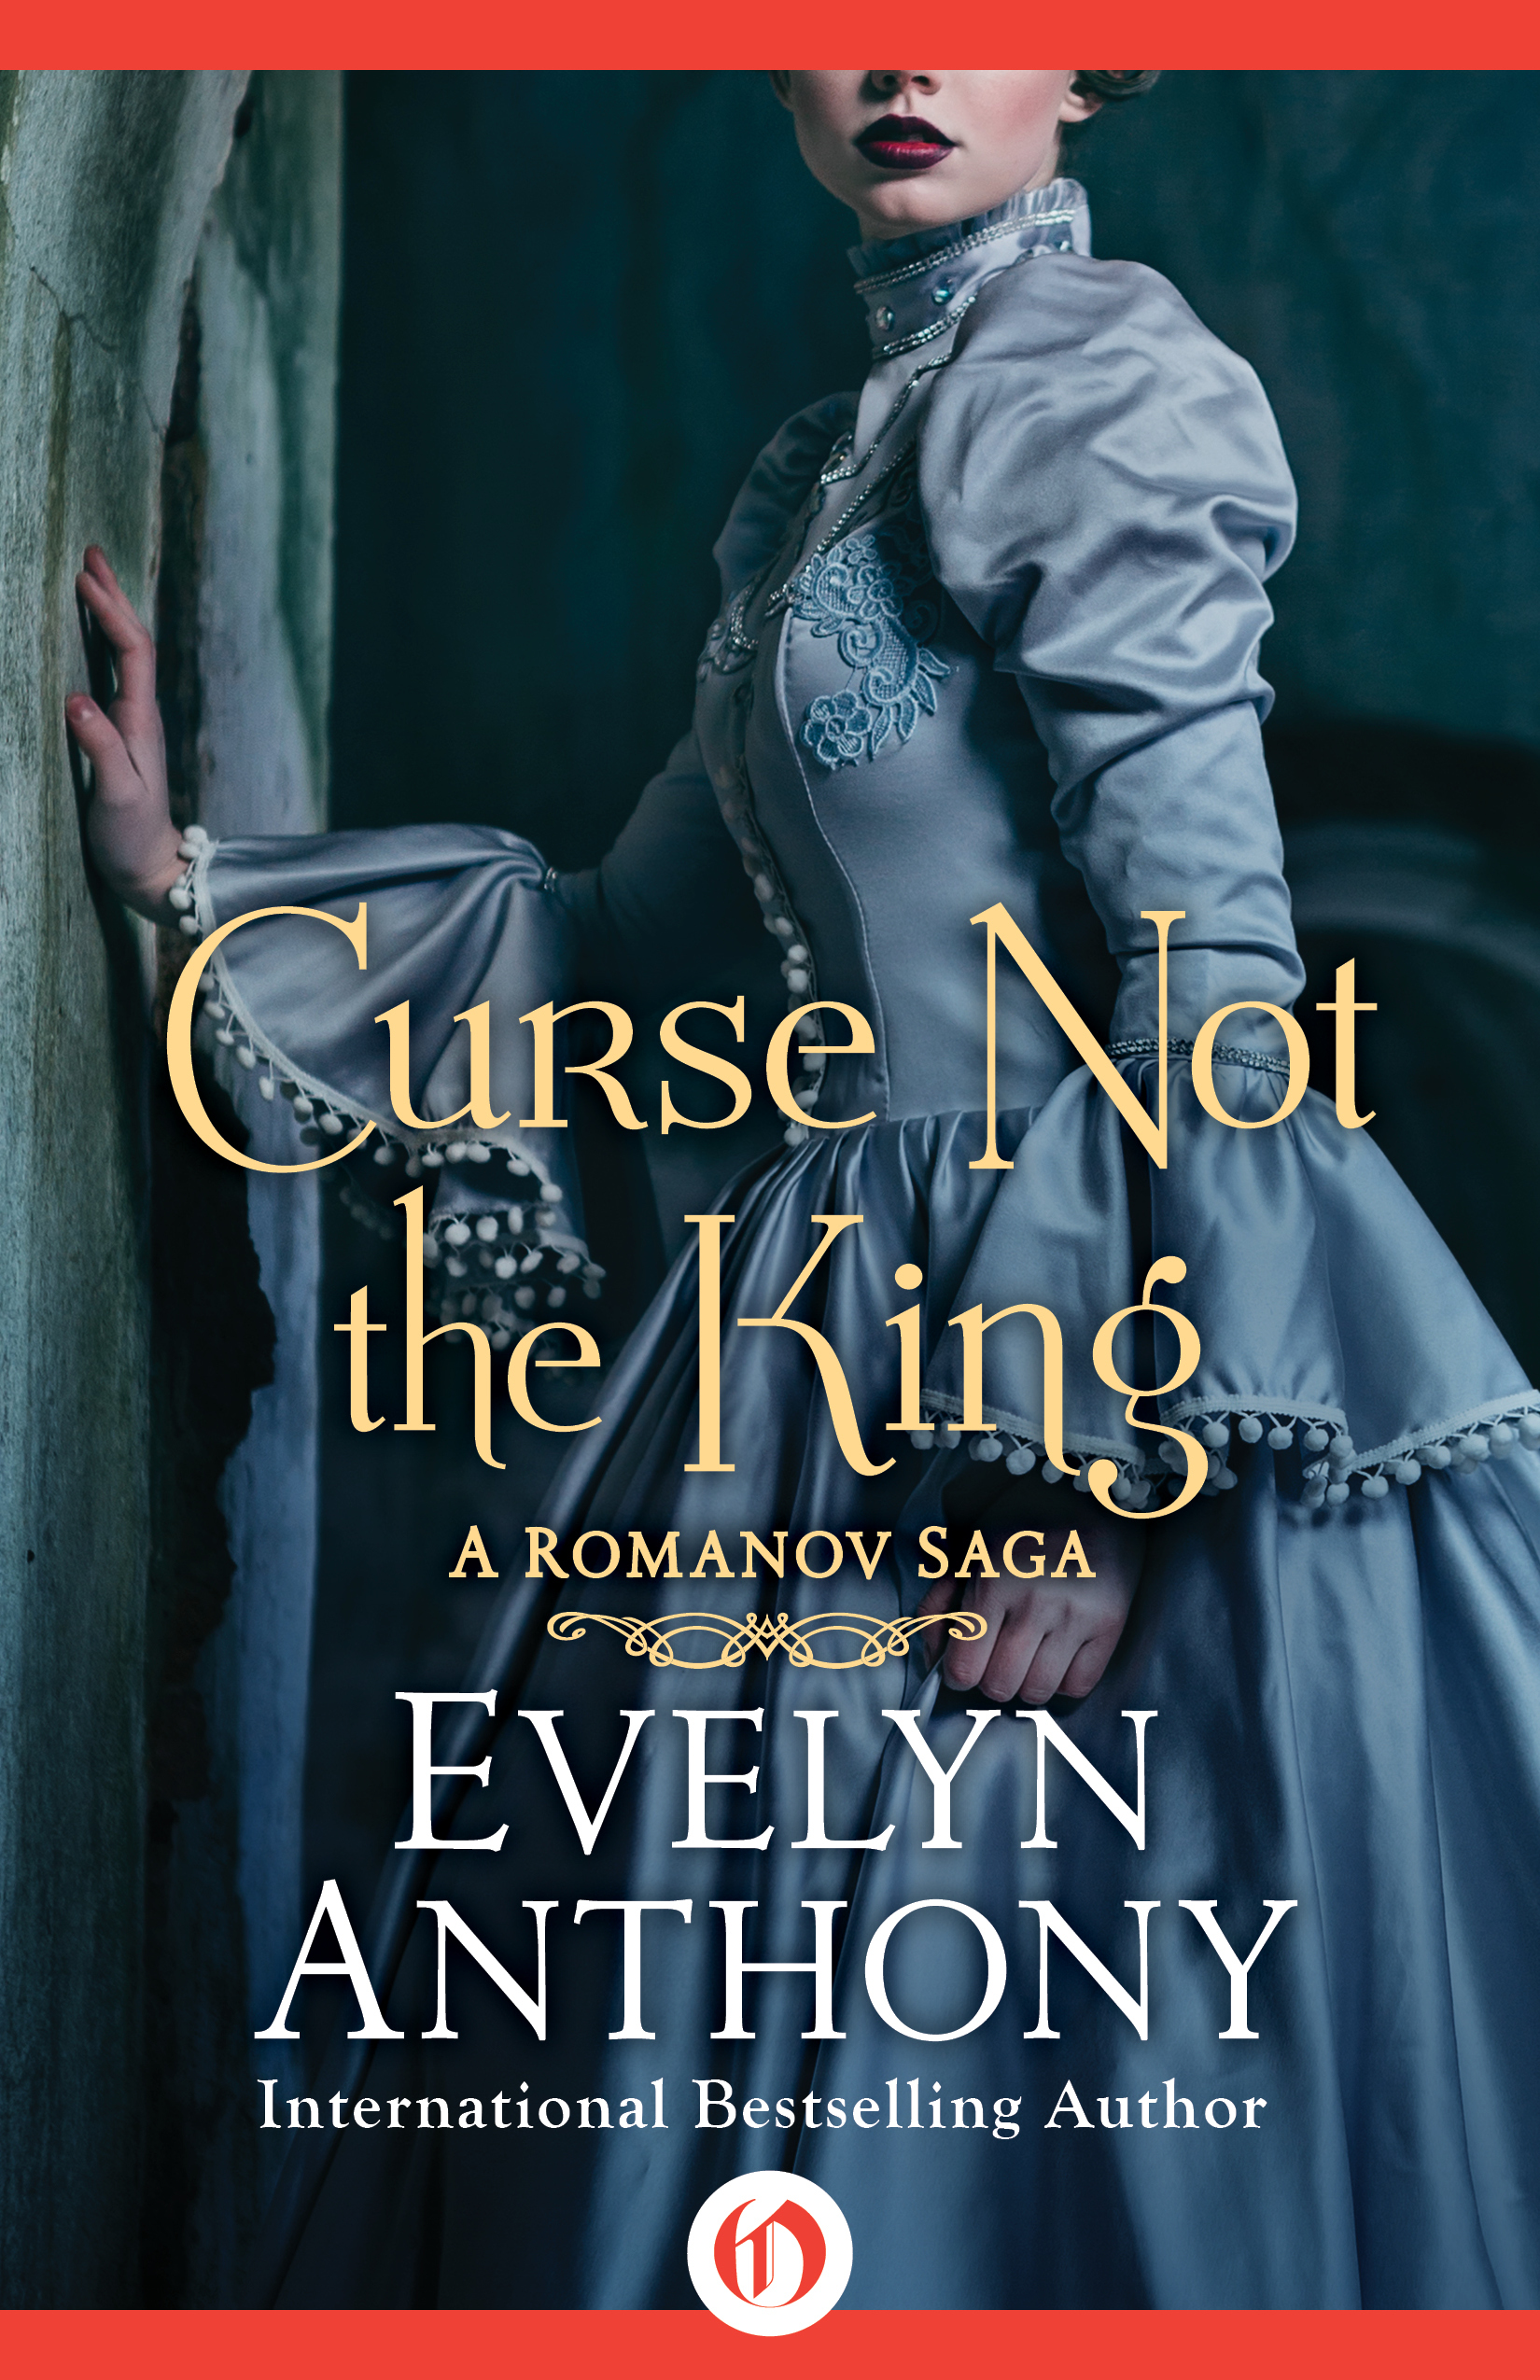 Curse Not the King Evelyn Anthony